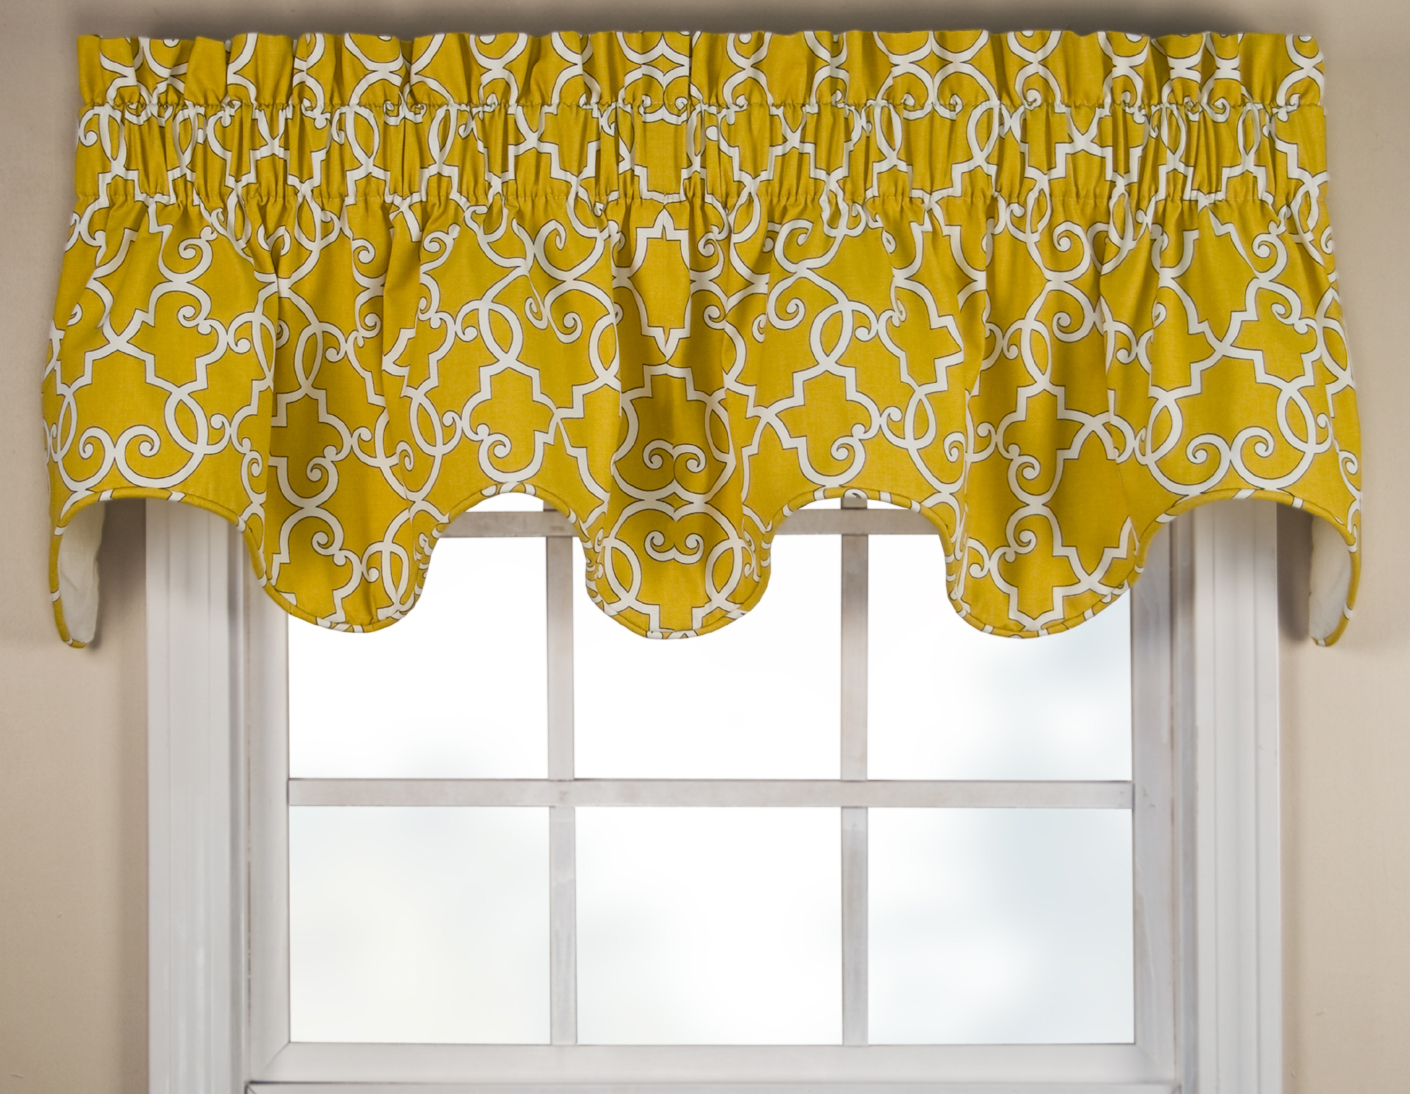 Scalloped Valances Patterned Solid Colored Double